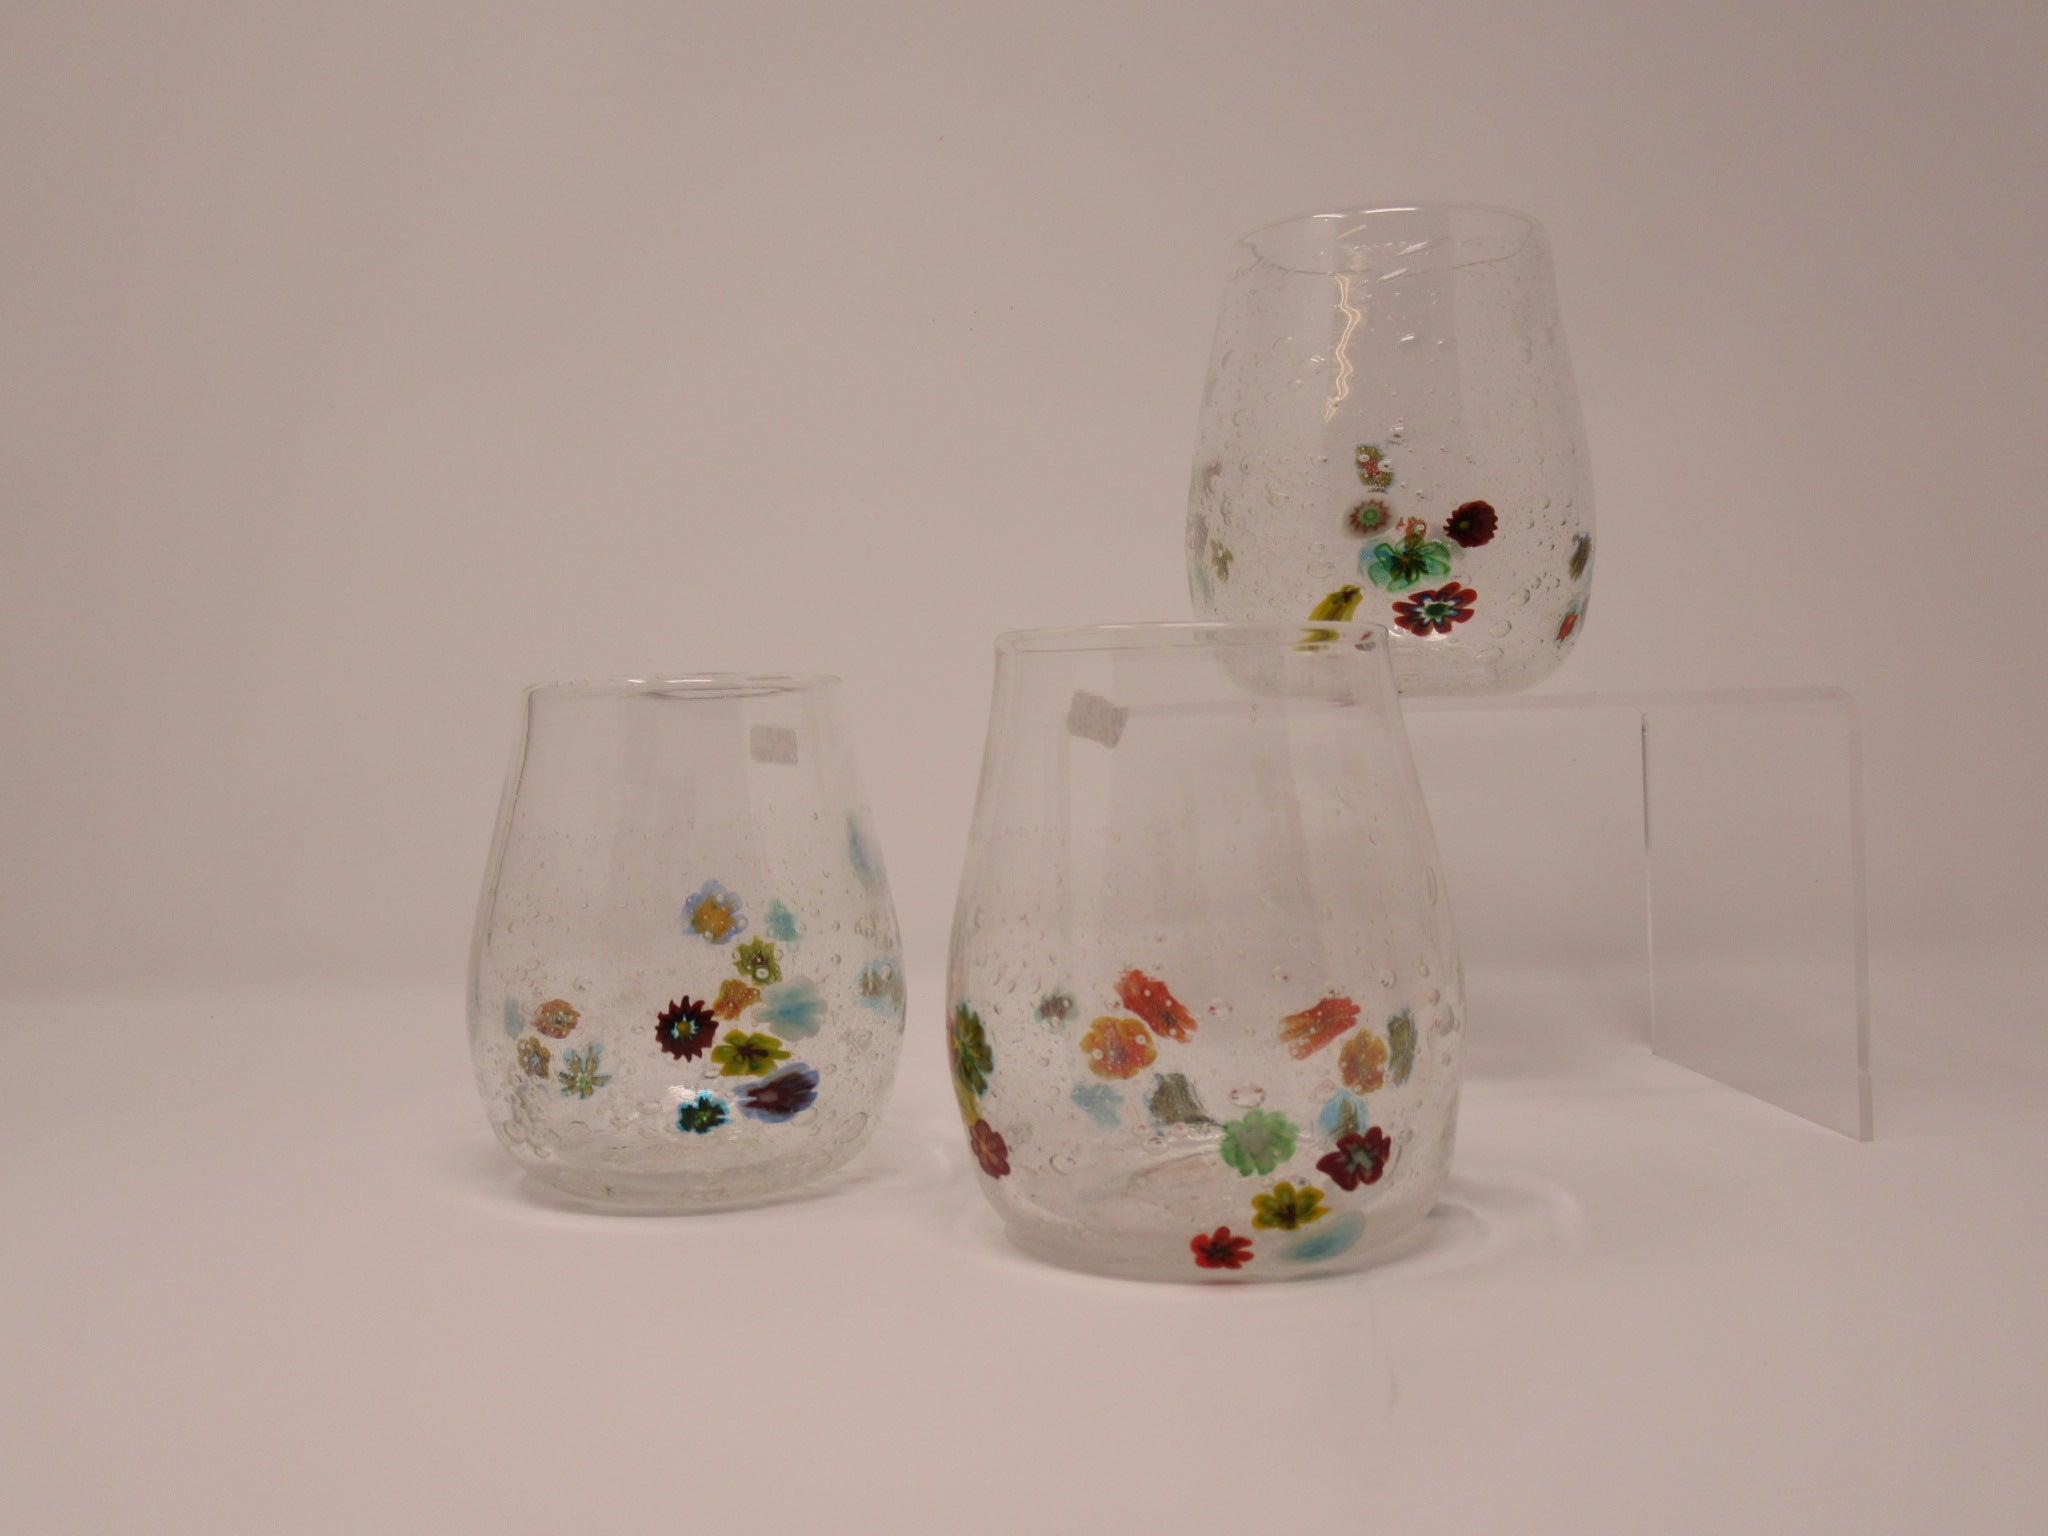 Drinking glass, clear bubbles with multicolored flowers, SMALL mille fliora